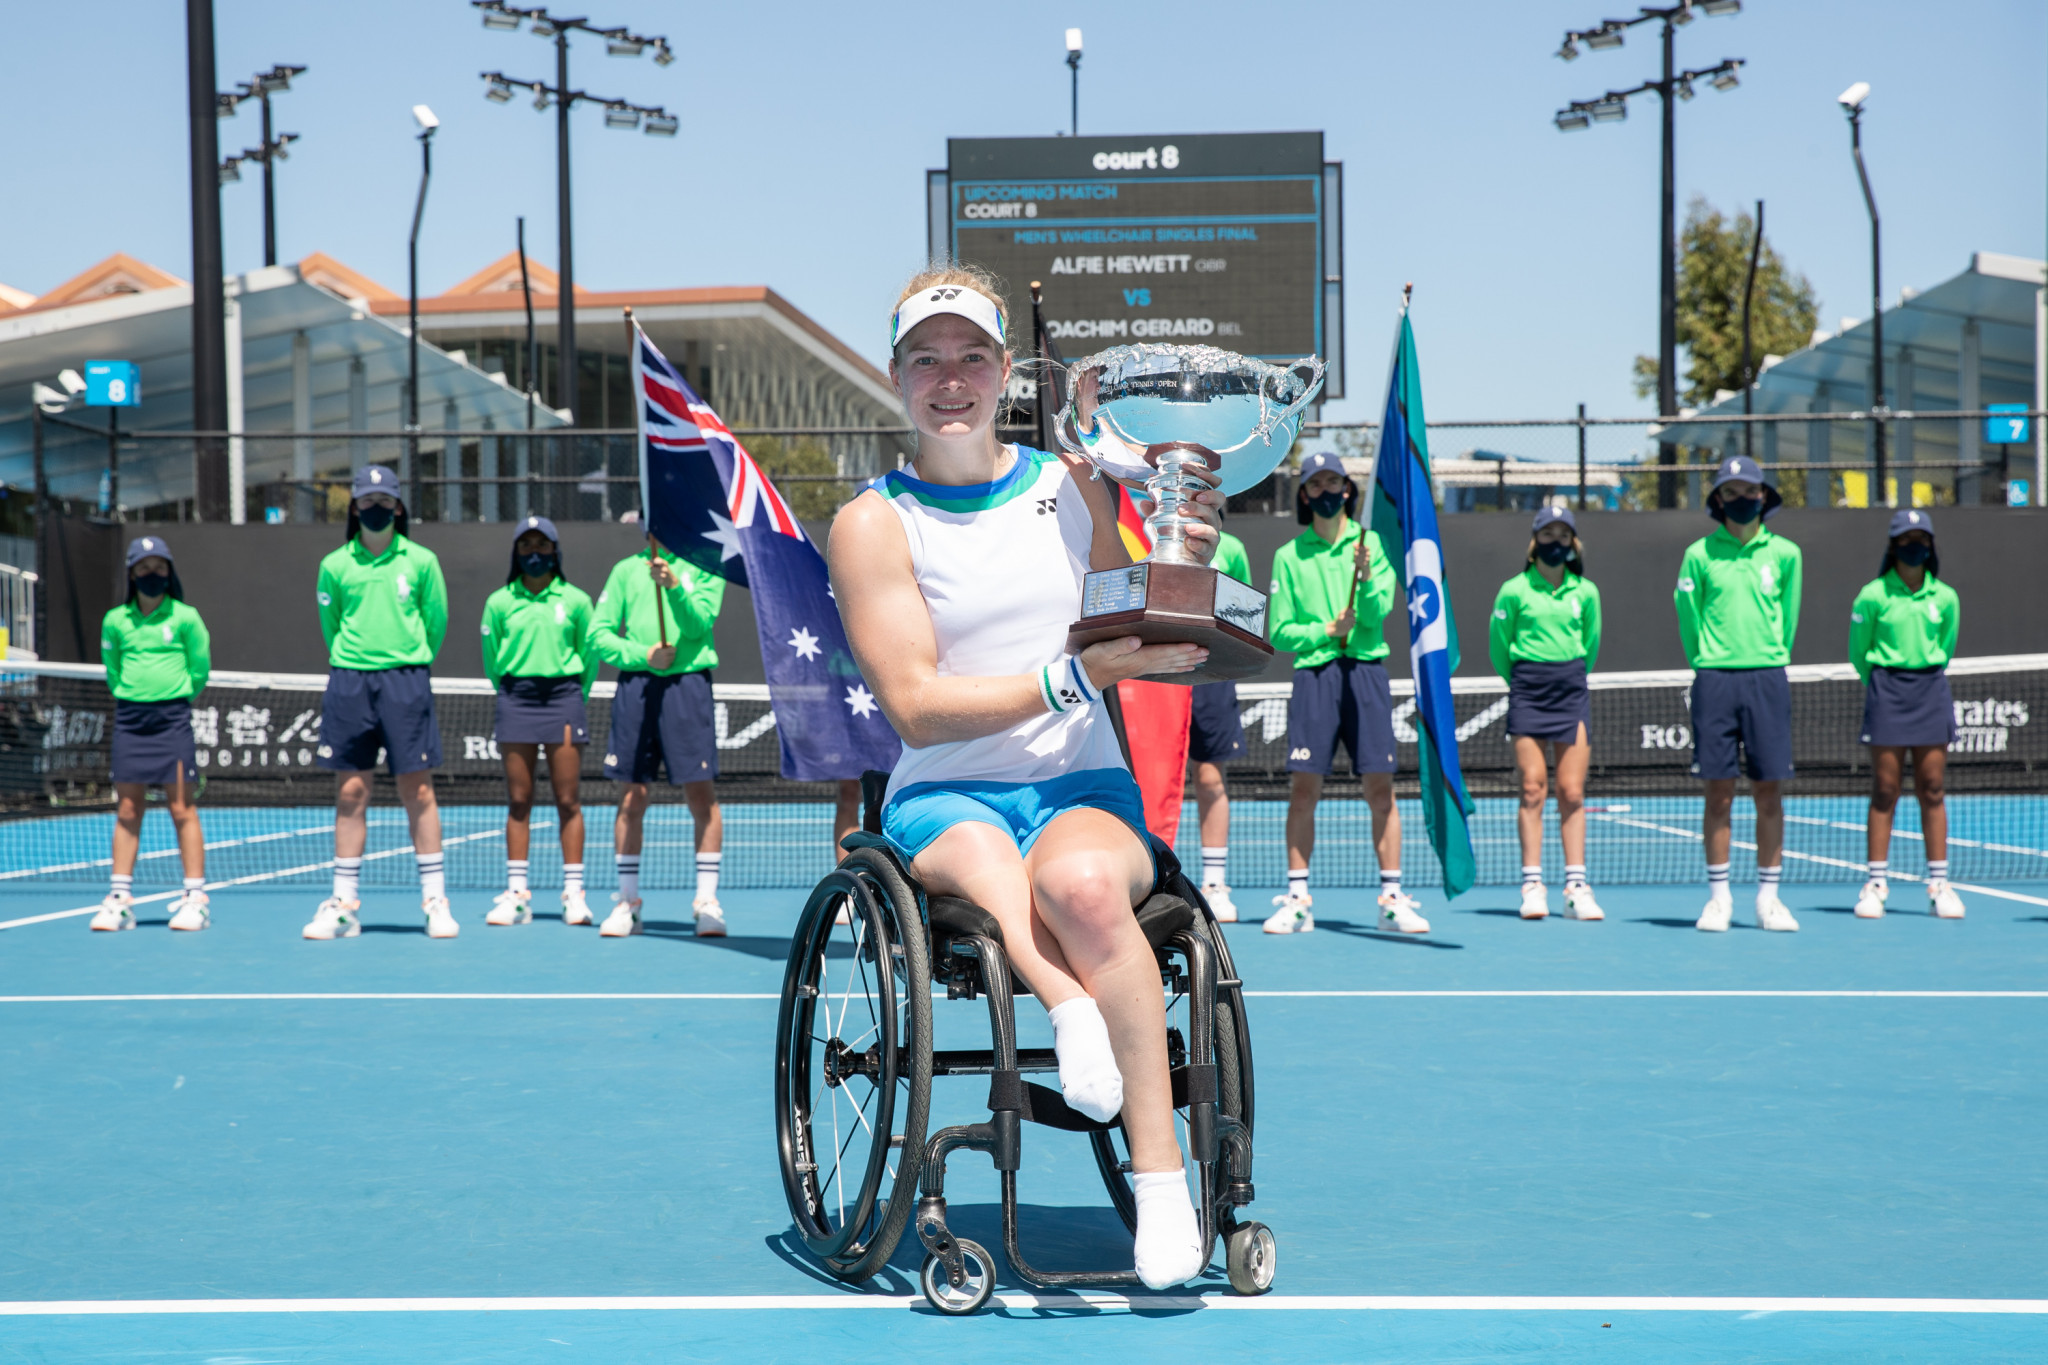 De Groot and Alcott do the double in Australian Open wheelchair tennis finals